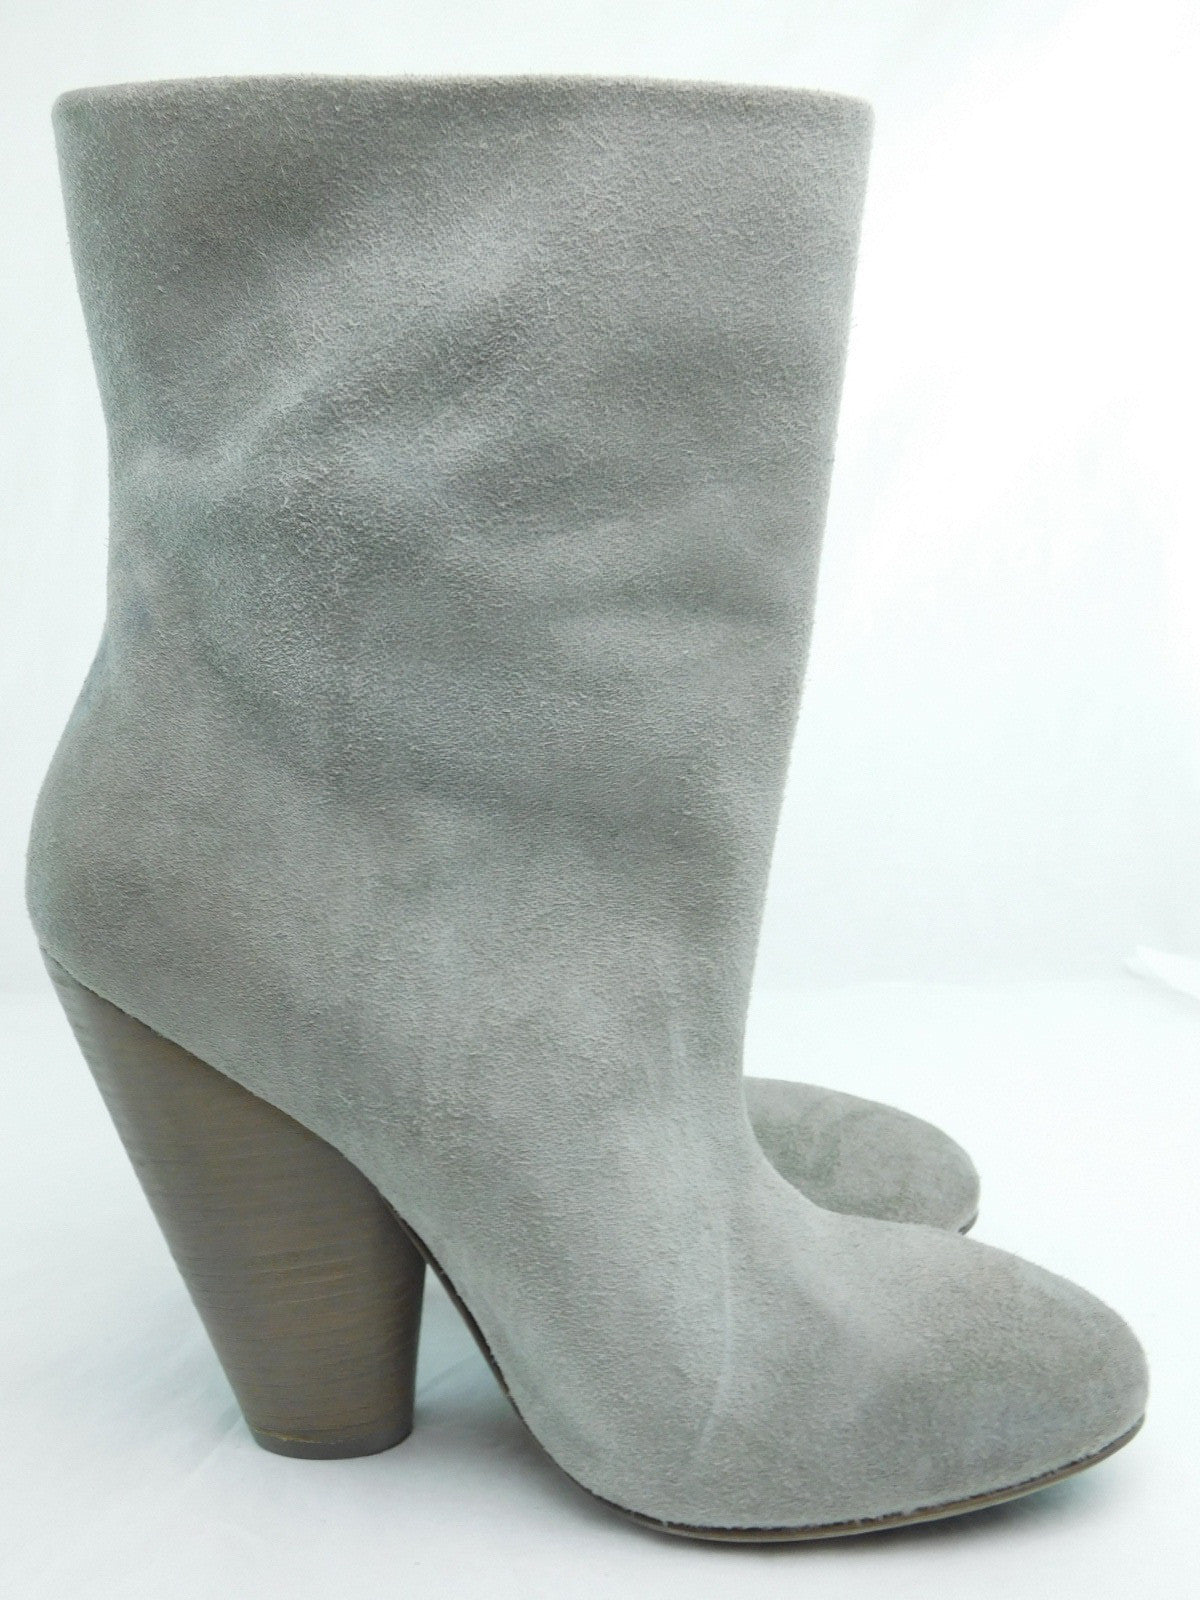 Marséll Grey Suede Ey Pull-On Round Toe Boots, Size 39/US 8.5